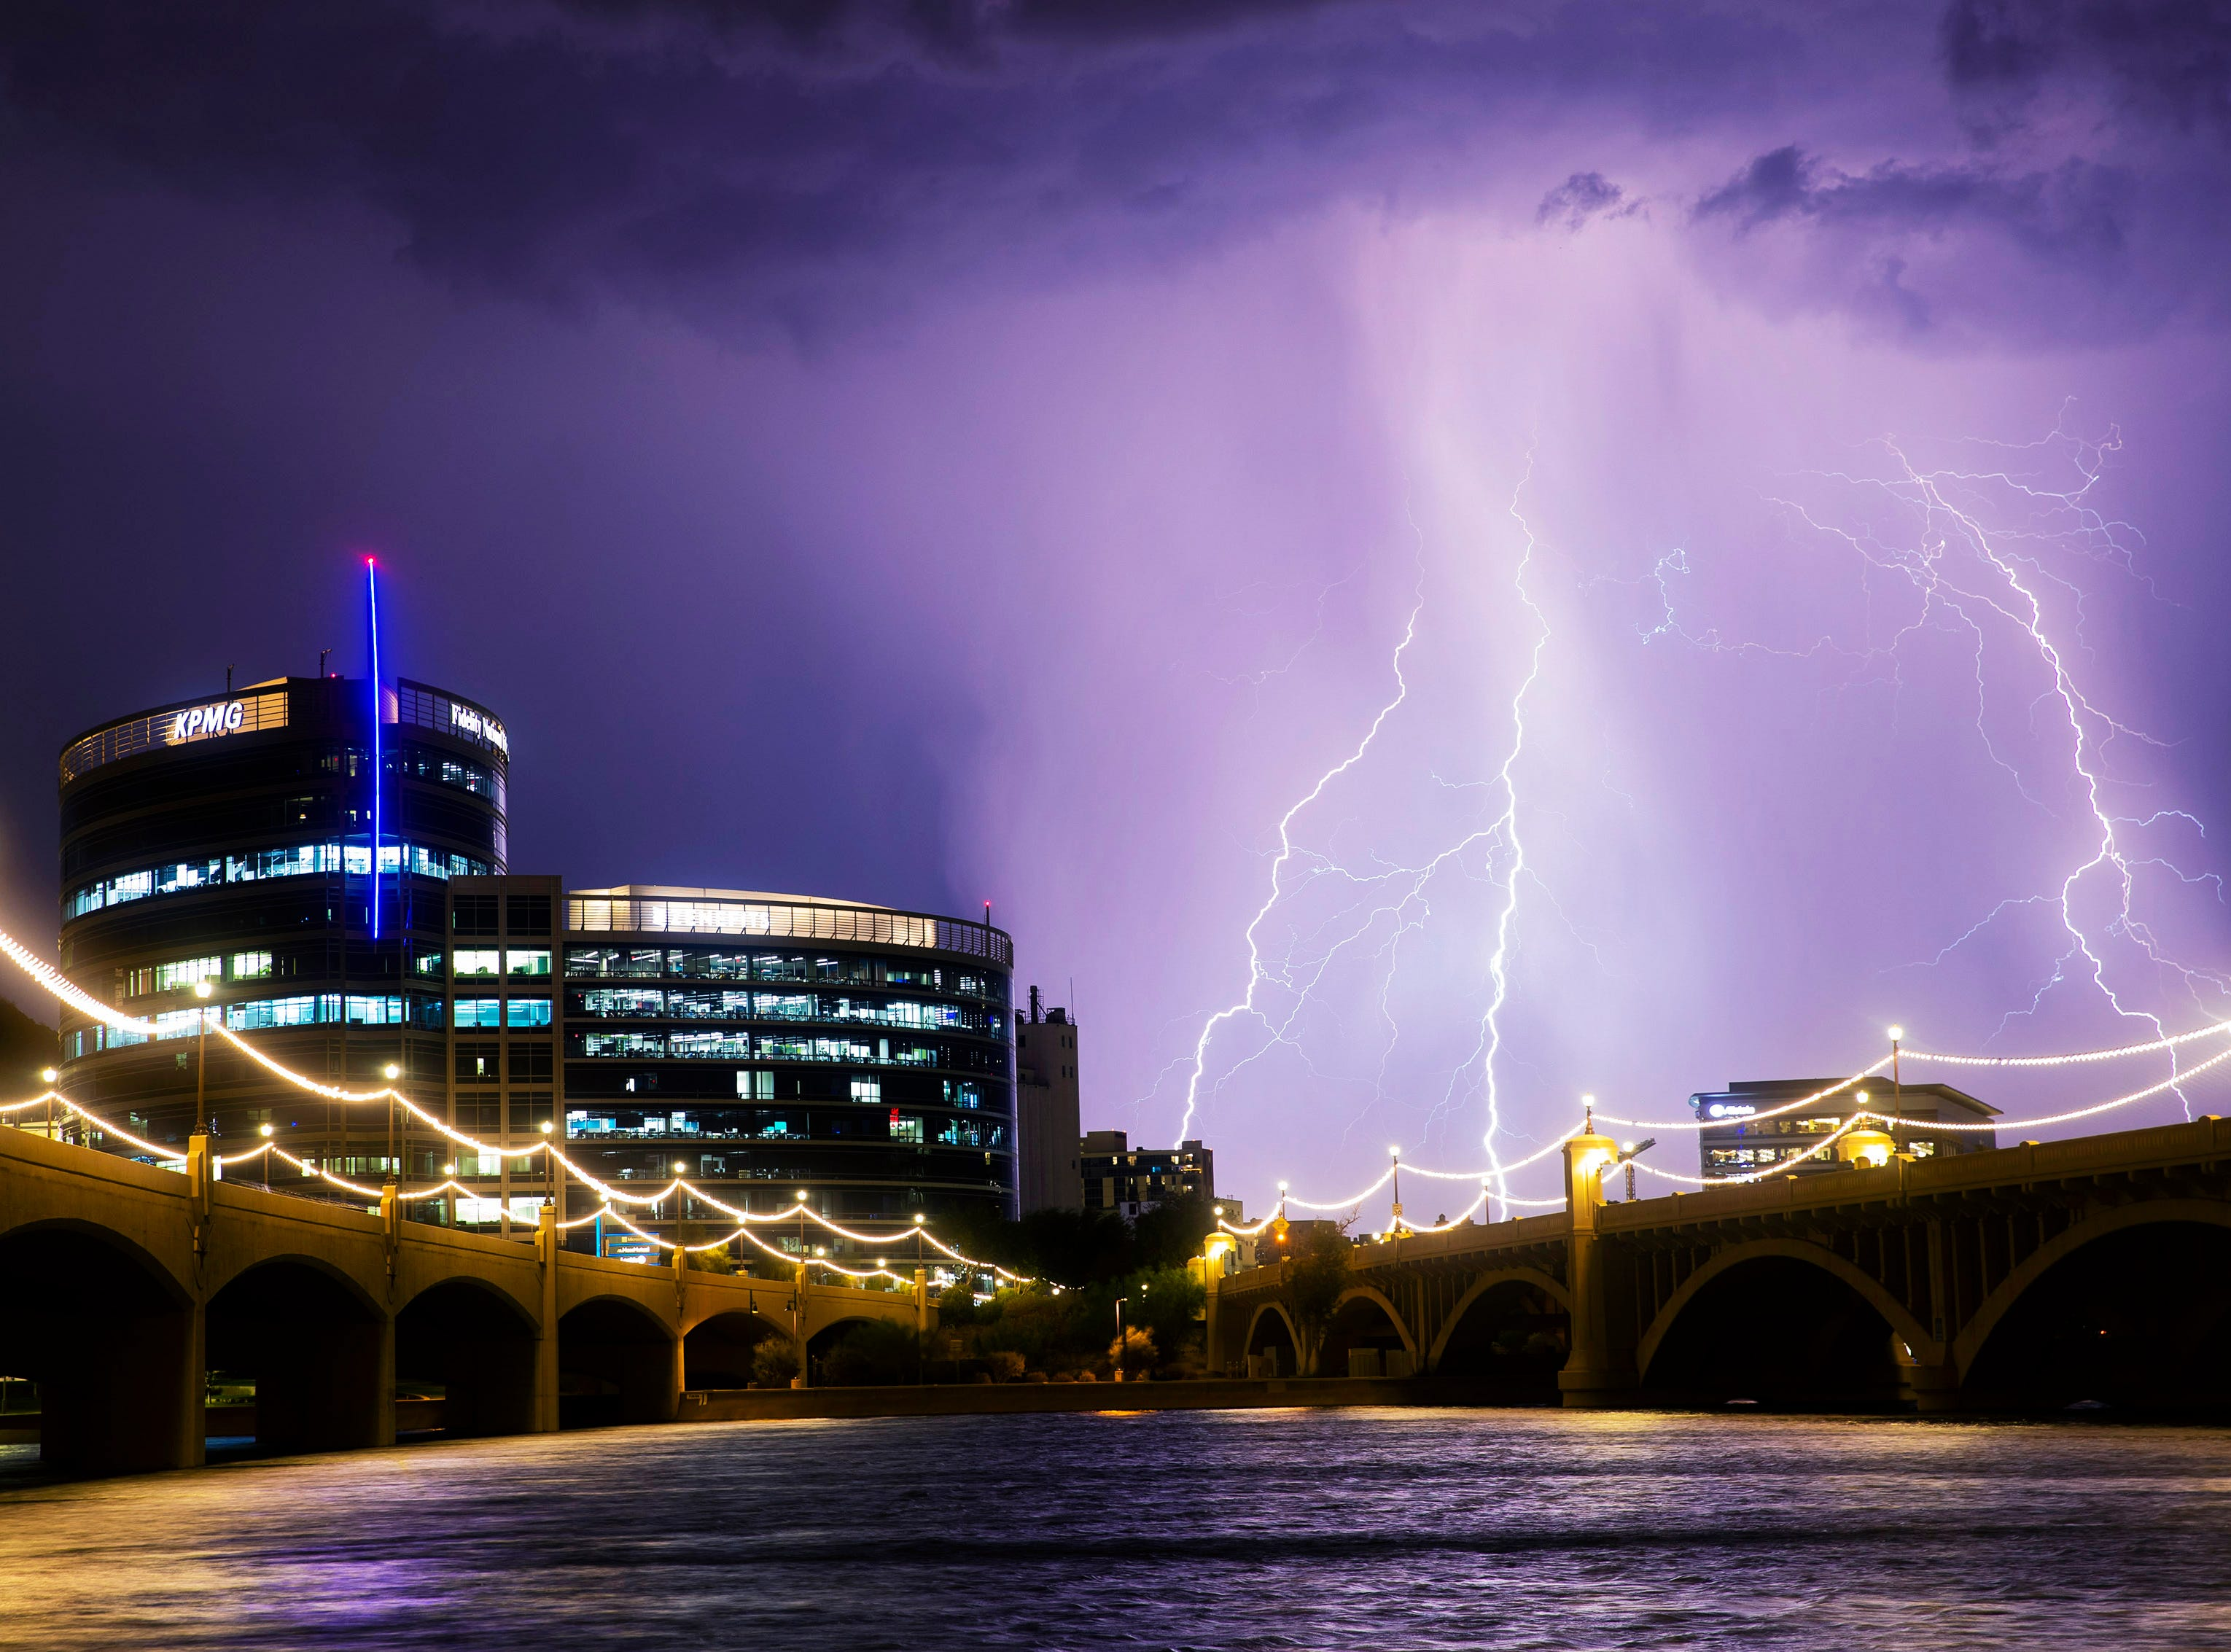 Arizonans really want to know: 'Is it safe to shower in a thunderstorm?'